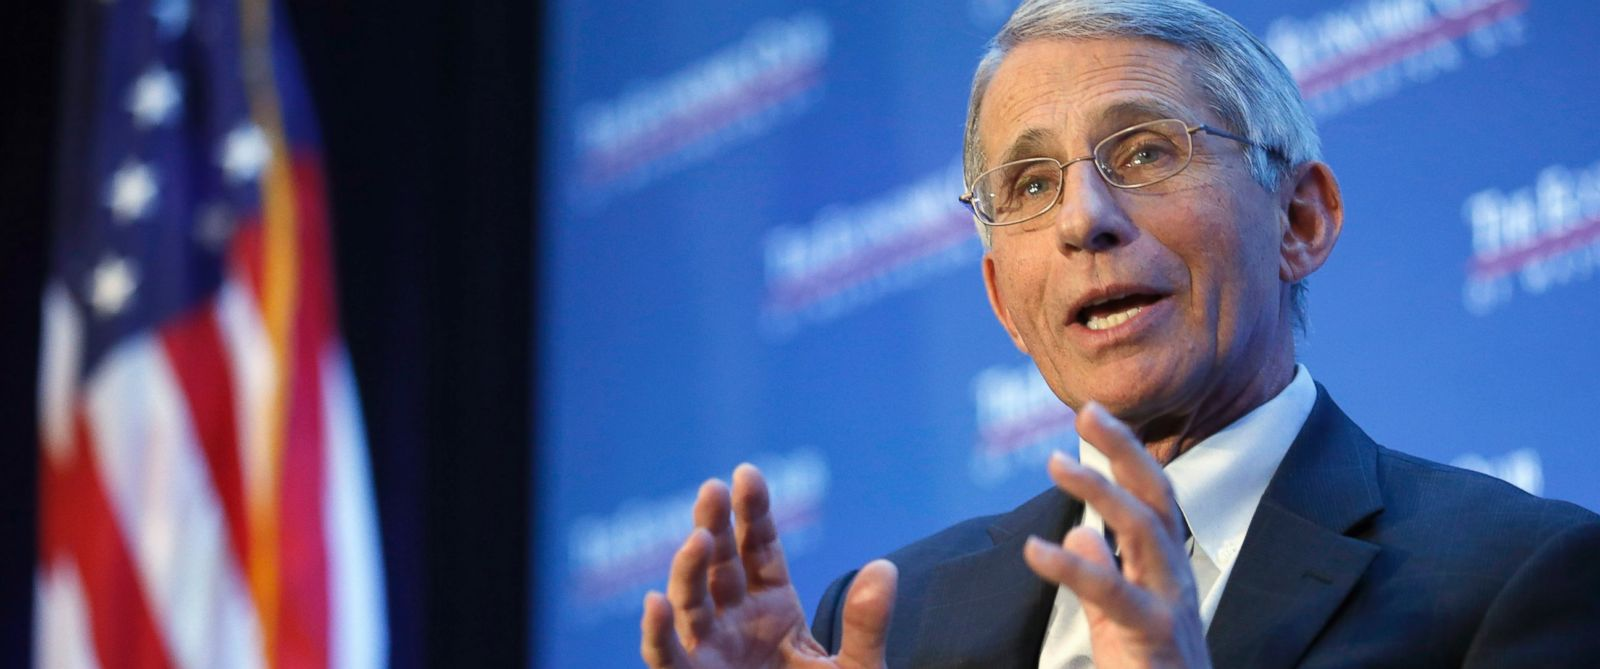 PHOTO: Dr. Anthony Fauci, director of the National Institute of Allergy and Infectious Diseases, speaks at the Economic Club of Washington on various topics including the Zika virus on Jan. 29, 2016, in Washington.